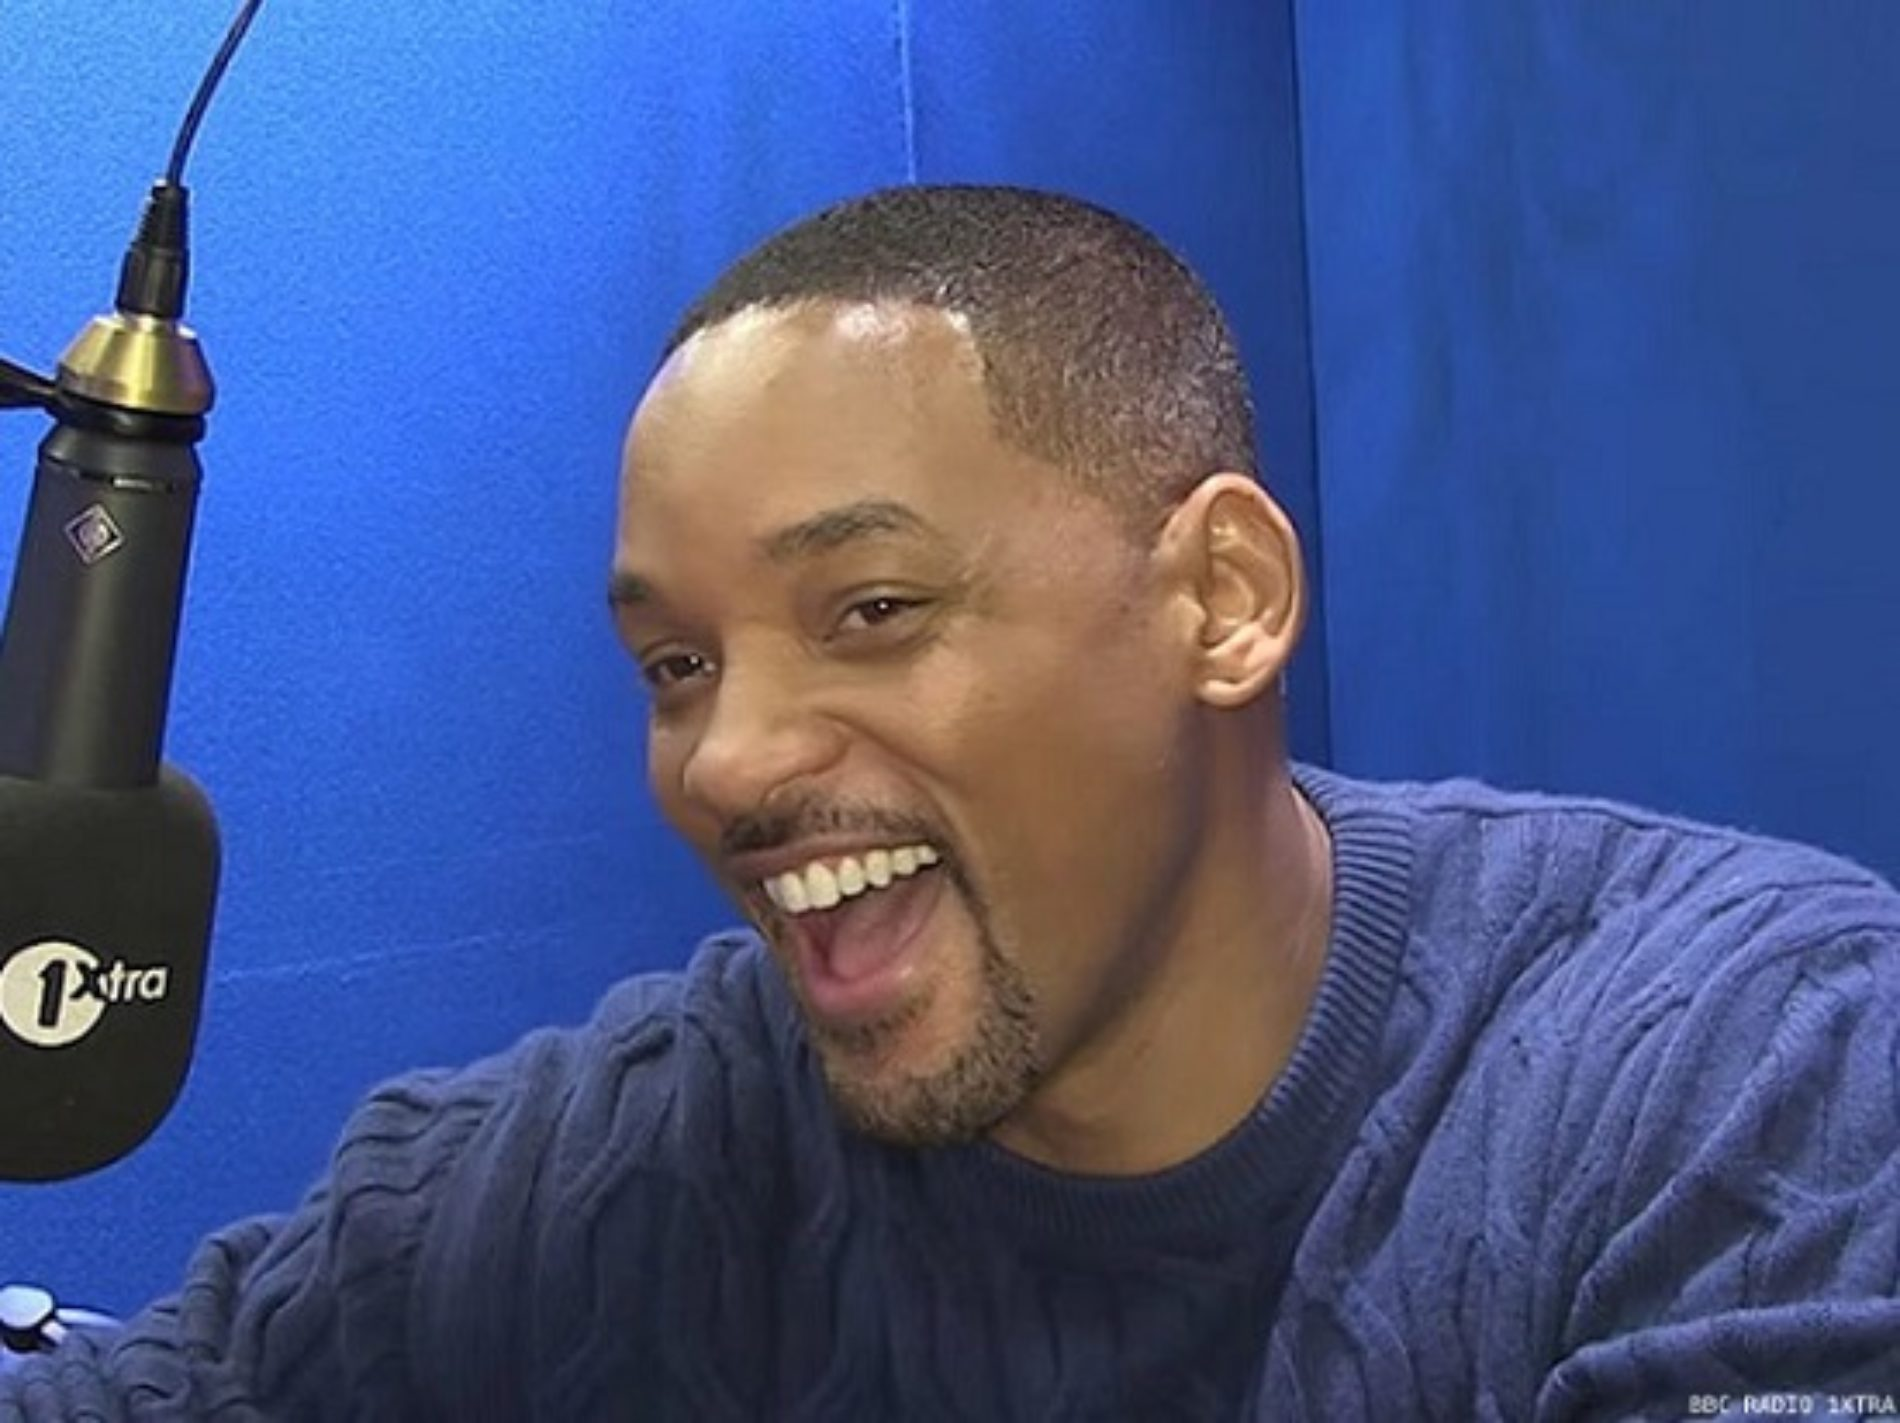 Will Smith on His Son Jaden's Gender Fluidity